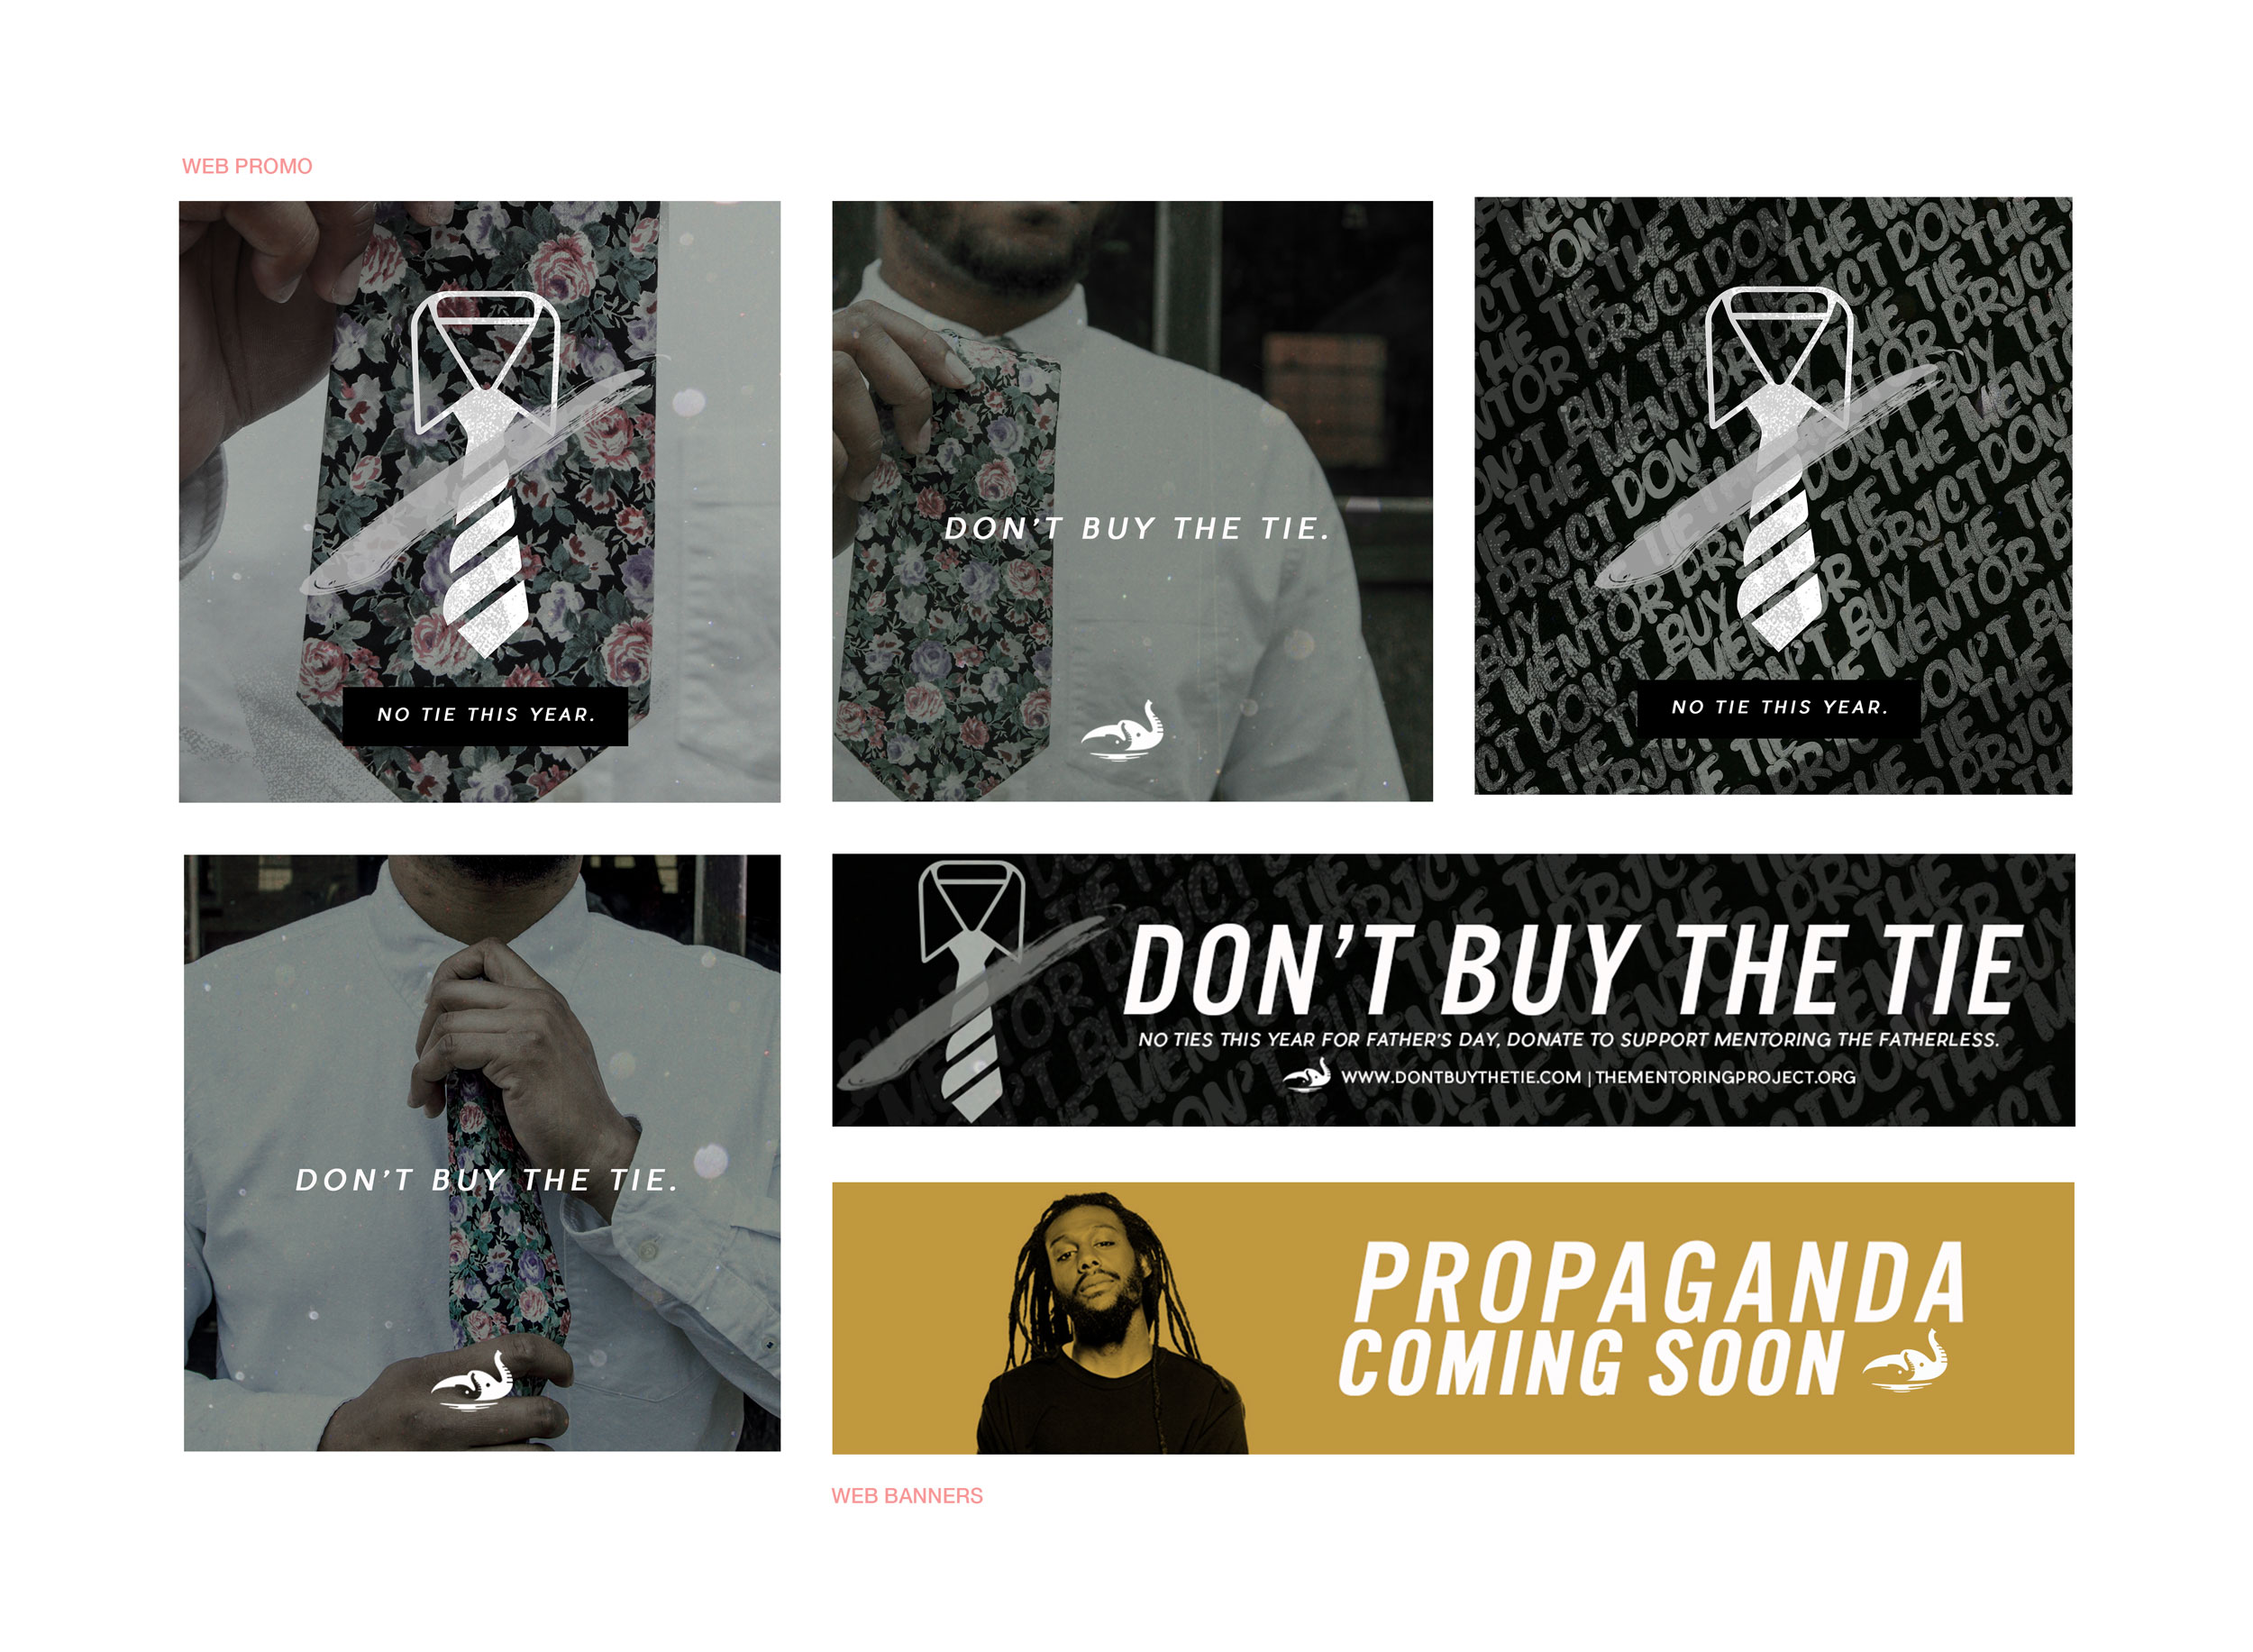 Don't Buy the Tie 2015 campaign created by Vernon Deas for  GRPFLY